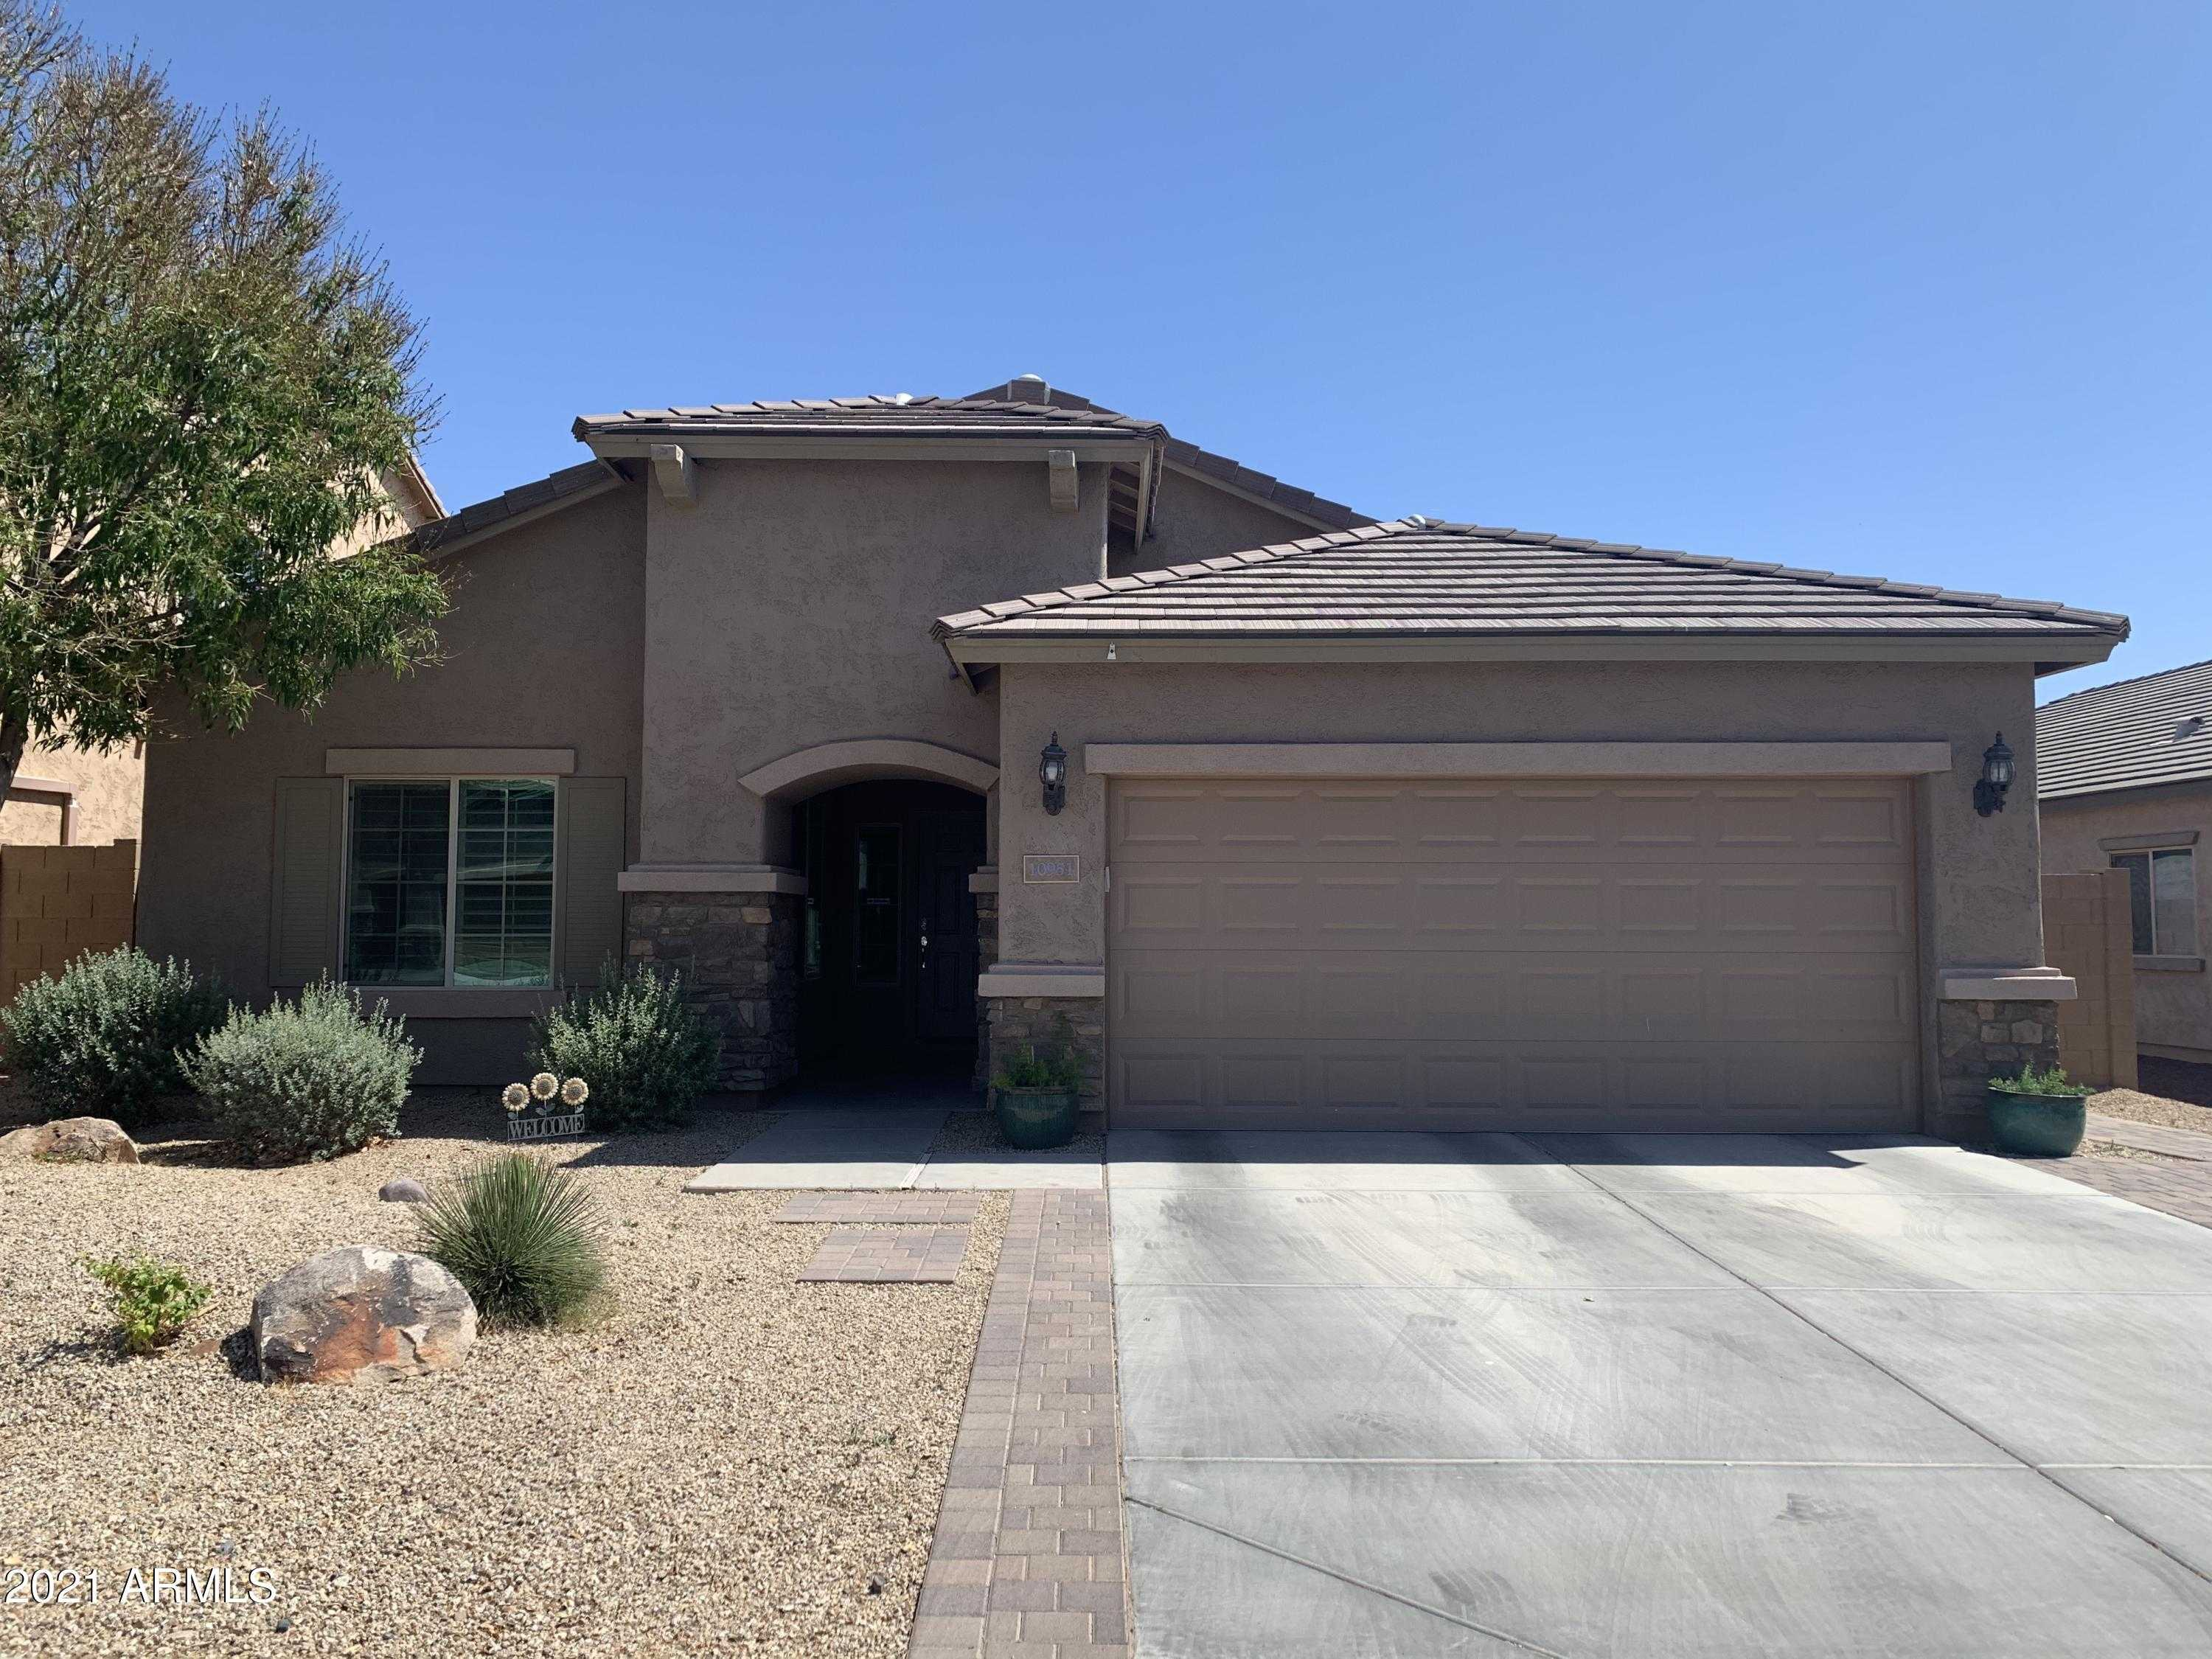 $475,000 - 3Br/2Ba - Home for Sale in Mountain Horizons Unit 3, Mesa